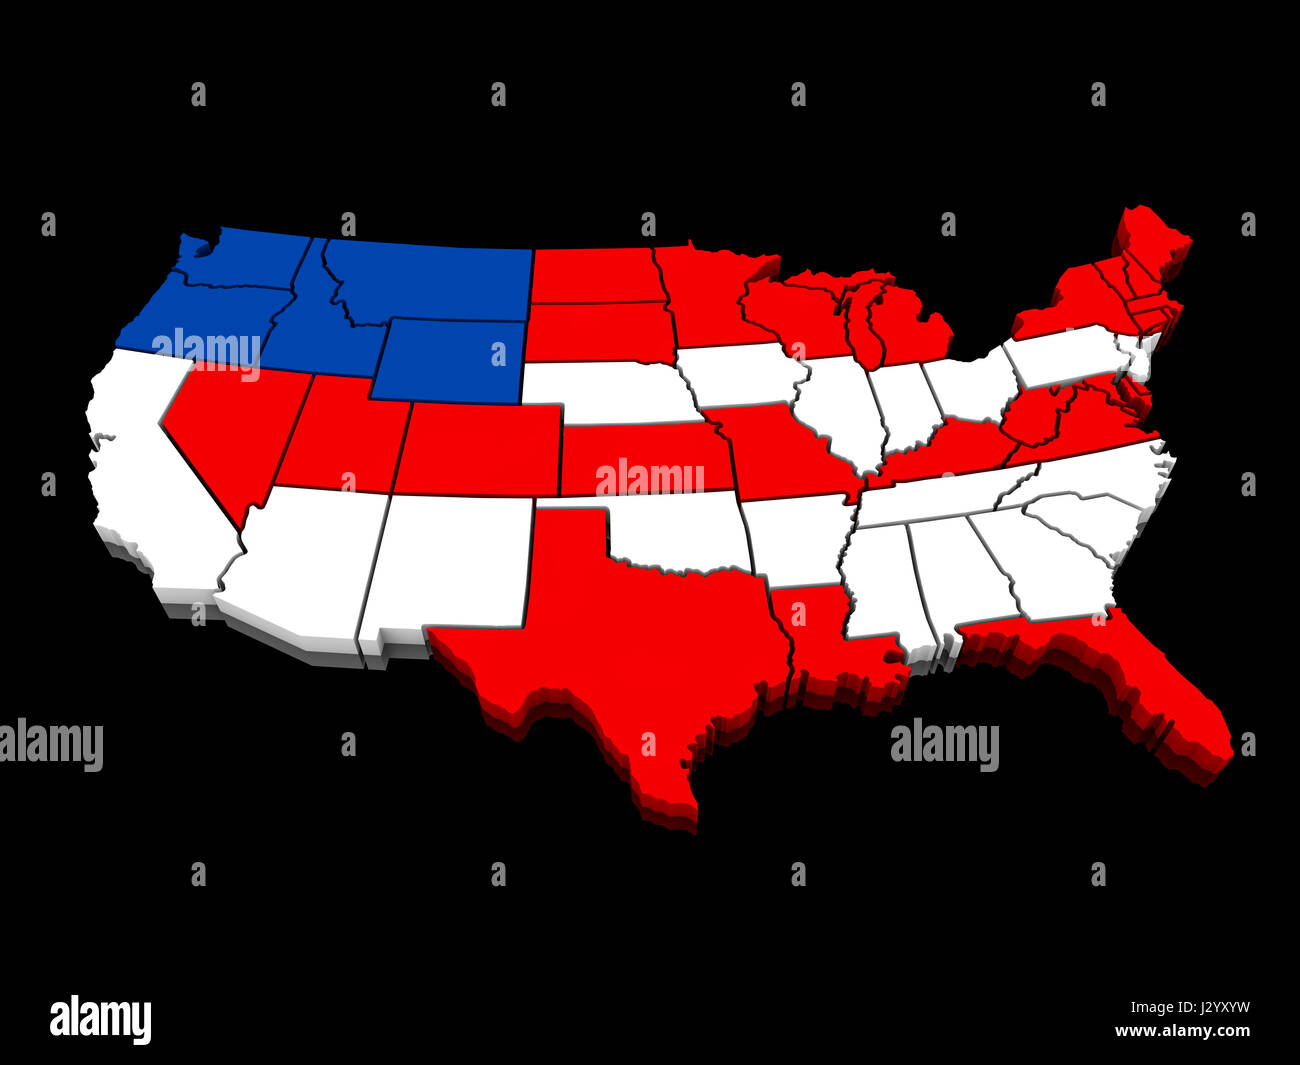 D Map United States Stock Photos  D Map United States Stock - 3d map usa states